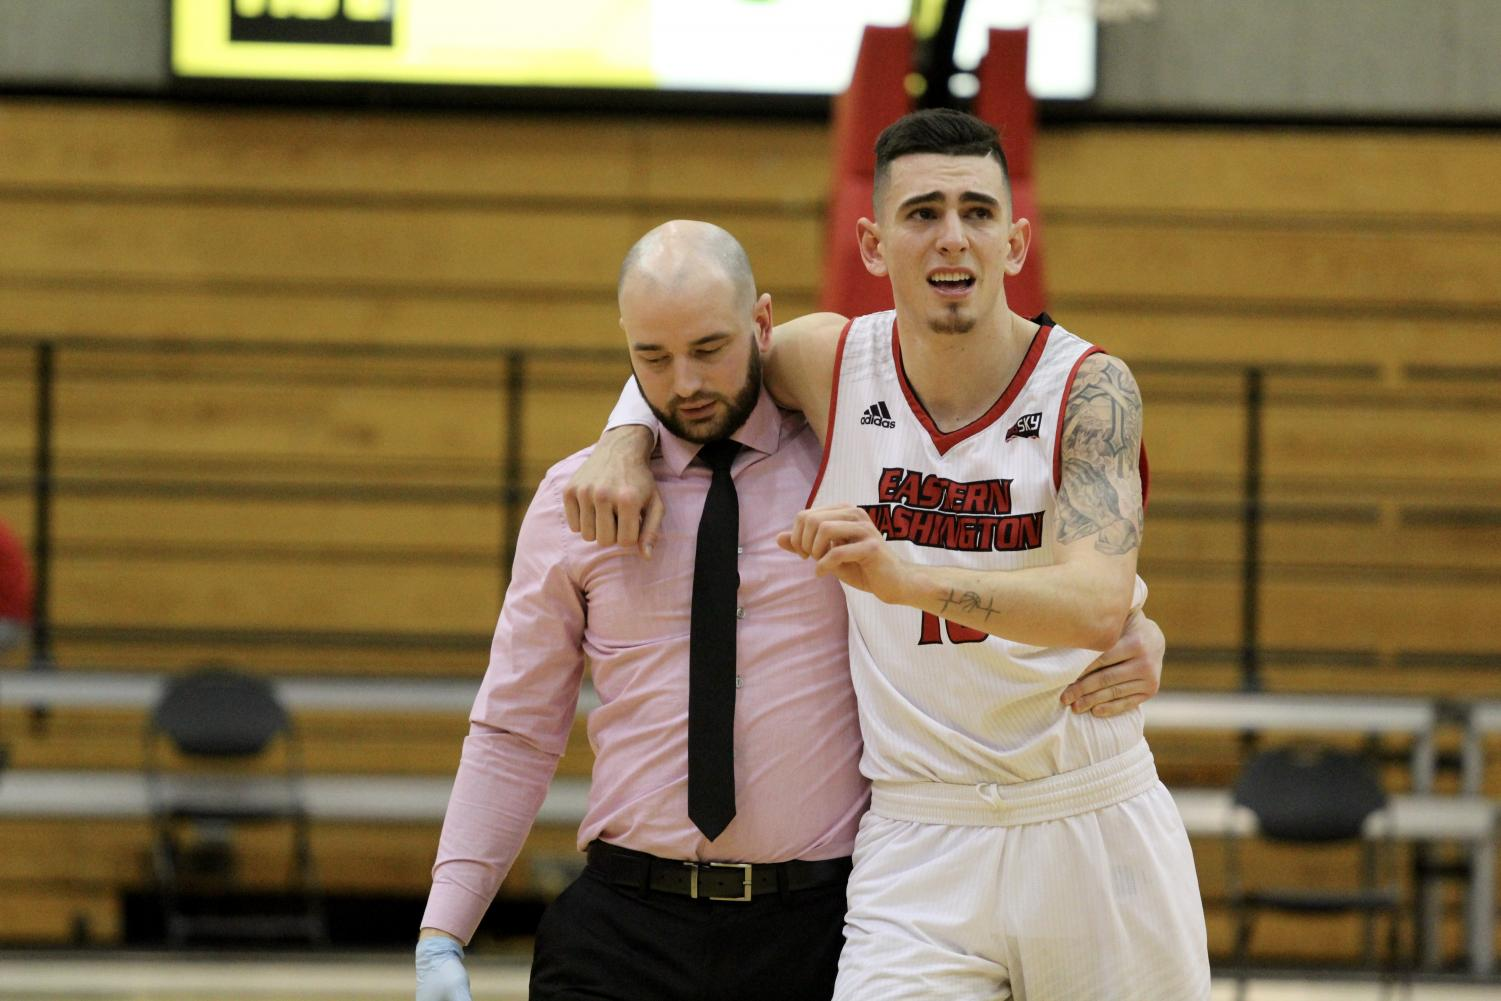 Sophomore guard Jacob Davison is helped off the court after suffering a sprained ankle with just under 10 minutes remaining in the second half. The Eagles didn't score for the last three and a half minutes of regulation, but dominated the overtime period to win 88-78.